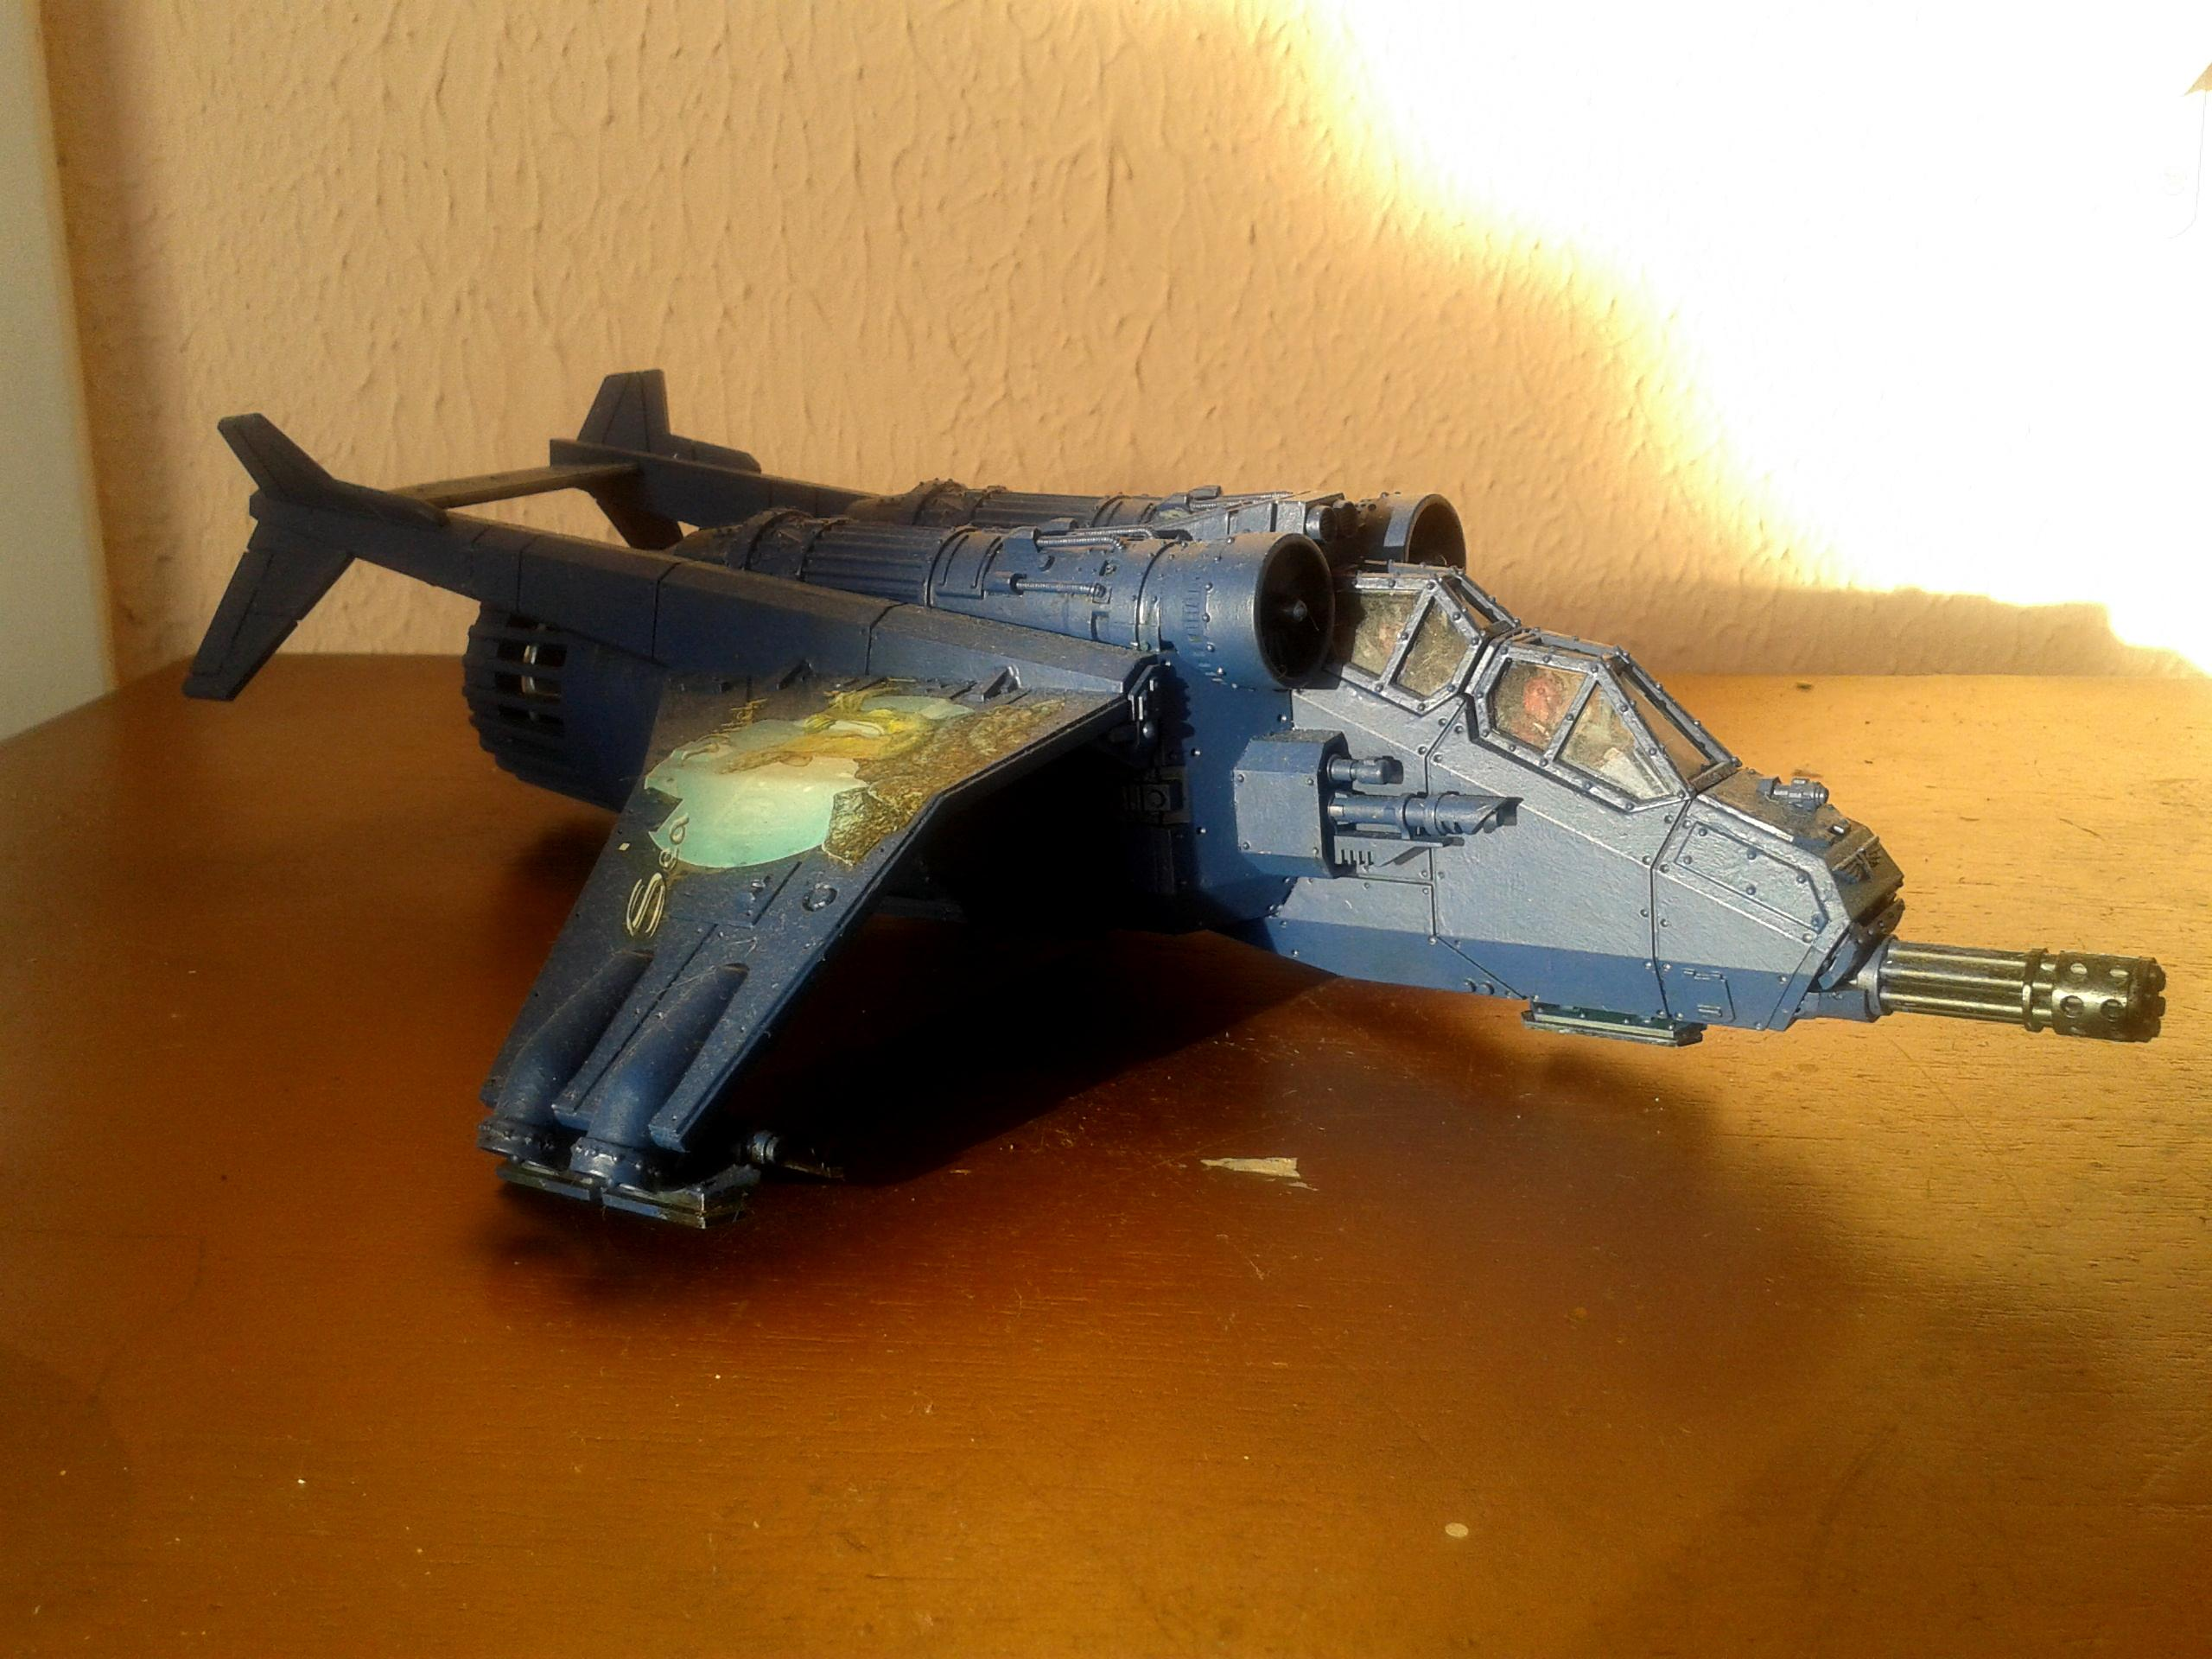 Aircraft, Conversion, Fighter, Firefly, Valkyrie